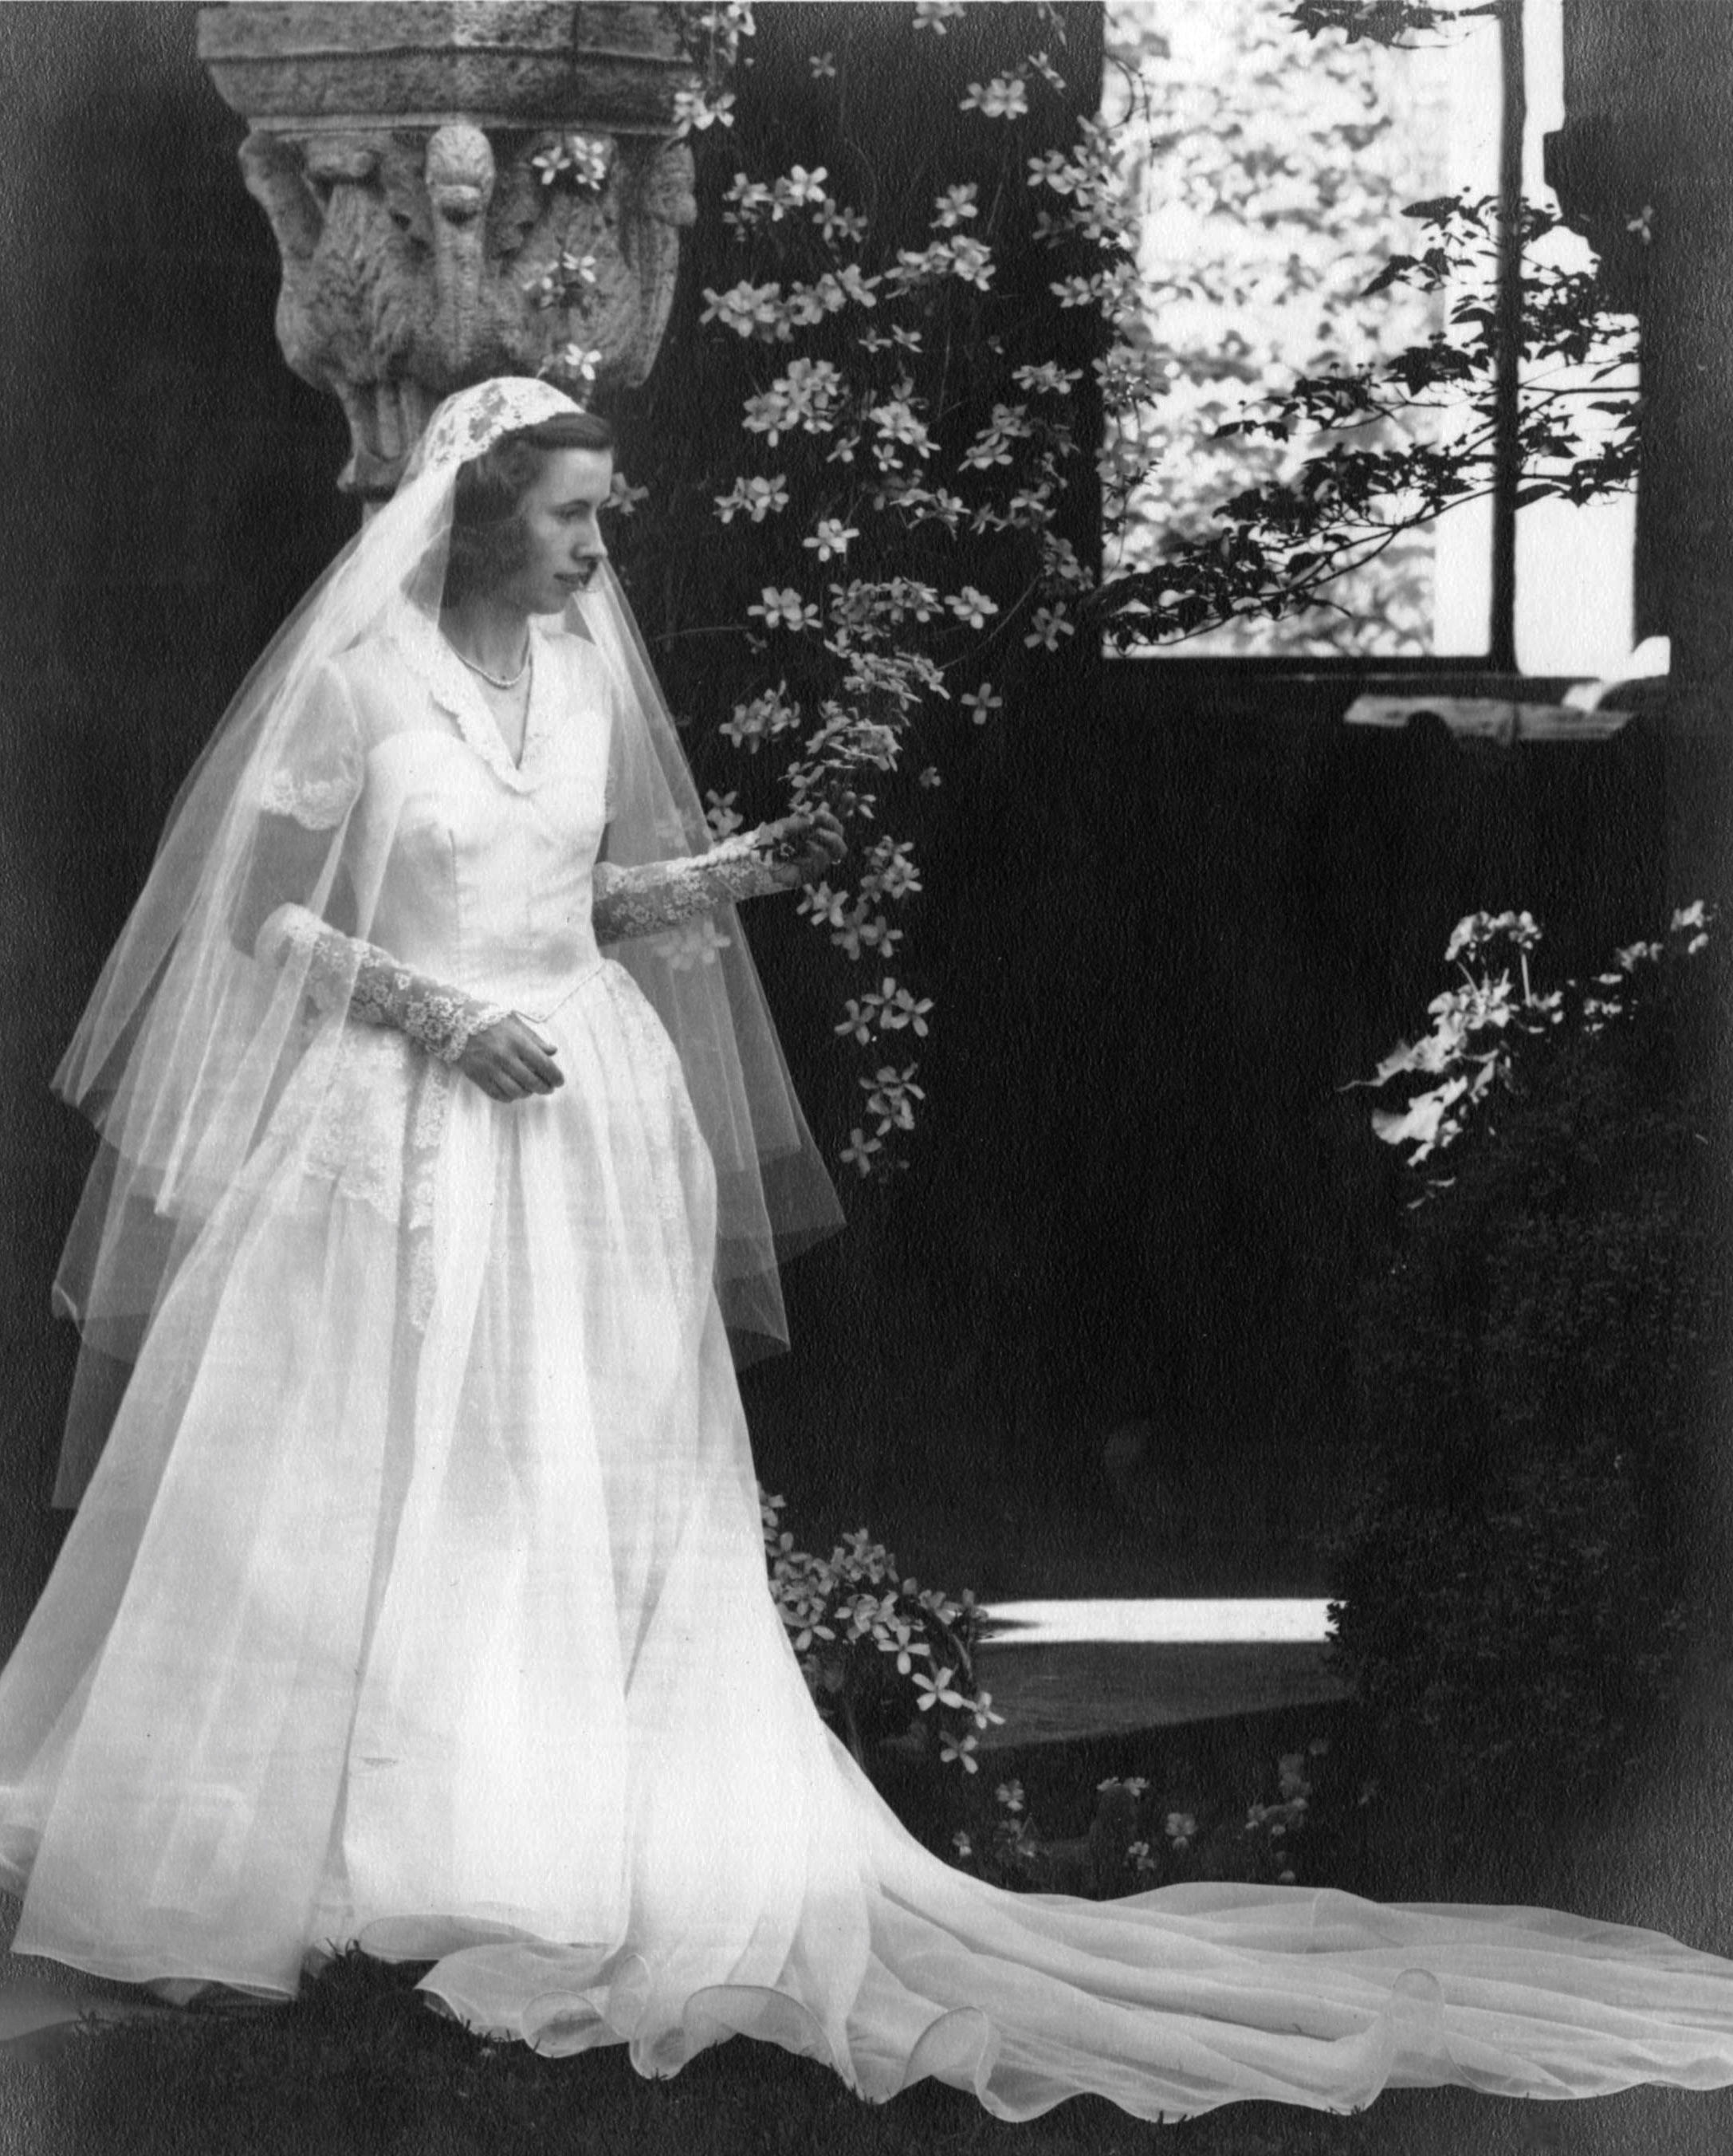 Figure 8: Eleanor Stroh (Hansen), who worked at Glencairn for the Pitcairn family, was photographed in the cloister in 1951 in her wedding dress. The wedding dress was a gift from the Pitcairns. Glencairn Museum continues the tradition of   wedding photography in the cloister  .